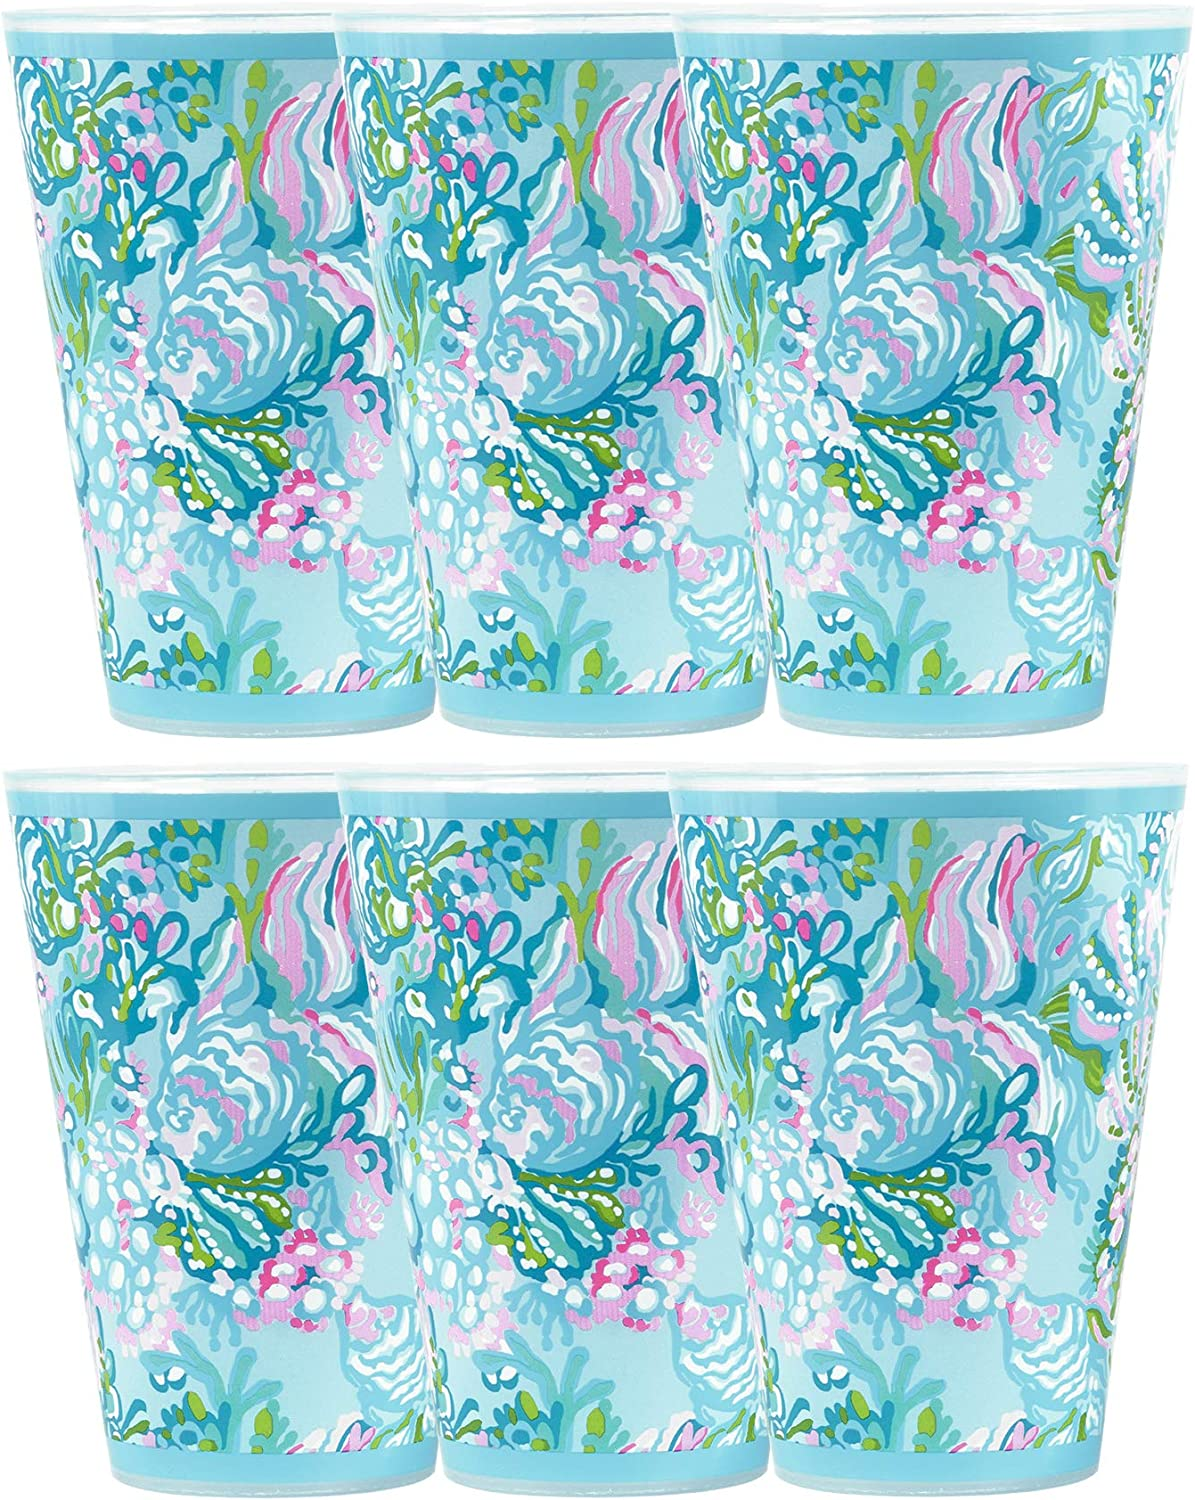 Lilly Pulitzer 14 Ounce Blue Reusable Plastic Pool Cups, Set of 6, Aqua La Vista